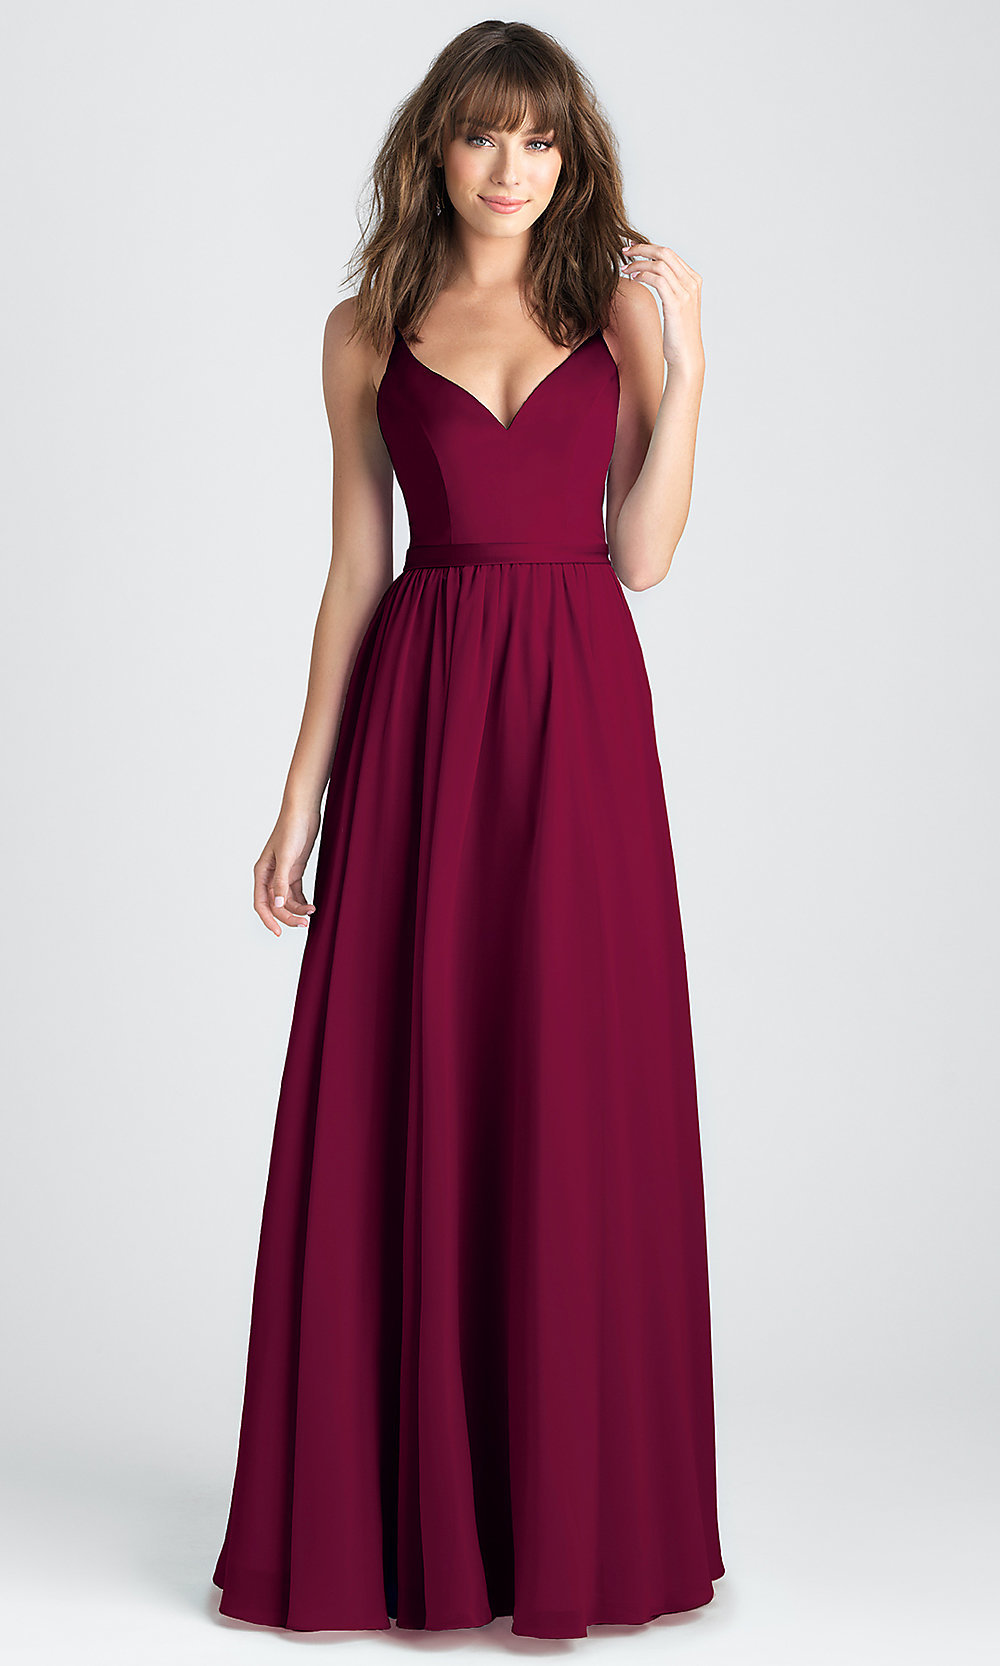 You searched for: burgundy dress! Etsy is the home to thousands of handmade, vintage, and one-of-a-kind products and gifts related to your search. No matter what you're looking for or where you are in the world, our global marketplace of sellers can help you find unique and affordable options. Let's get started!